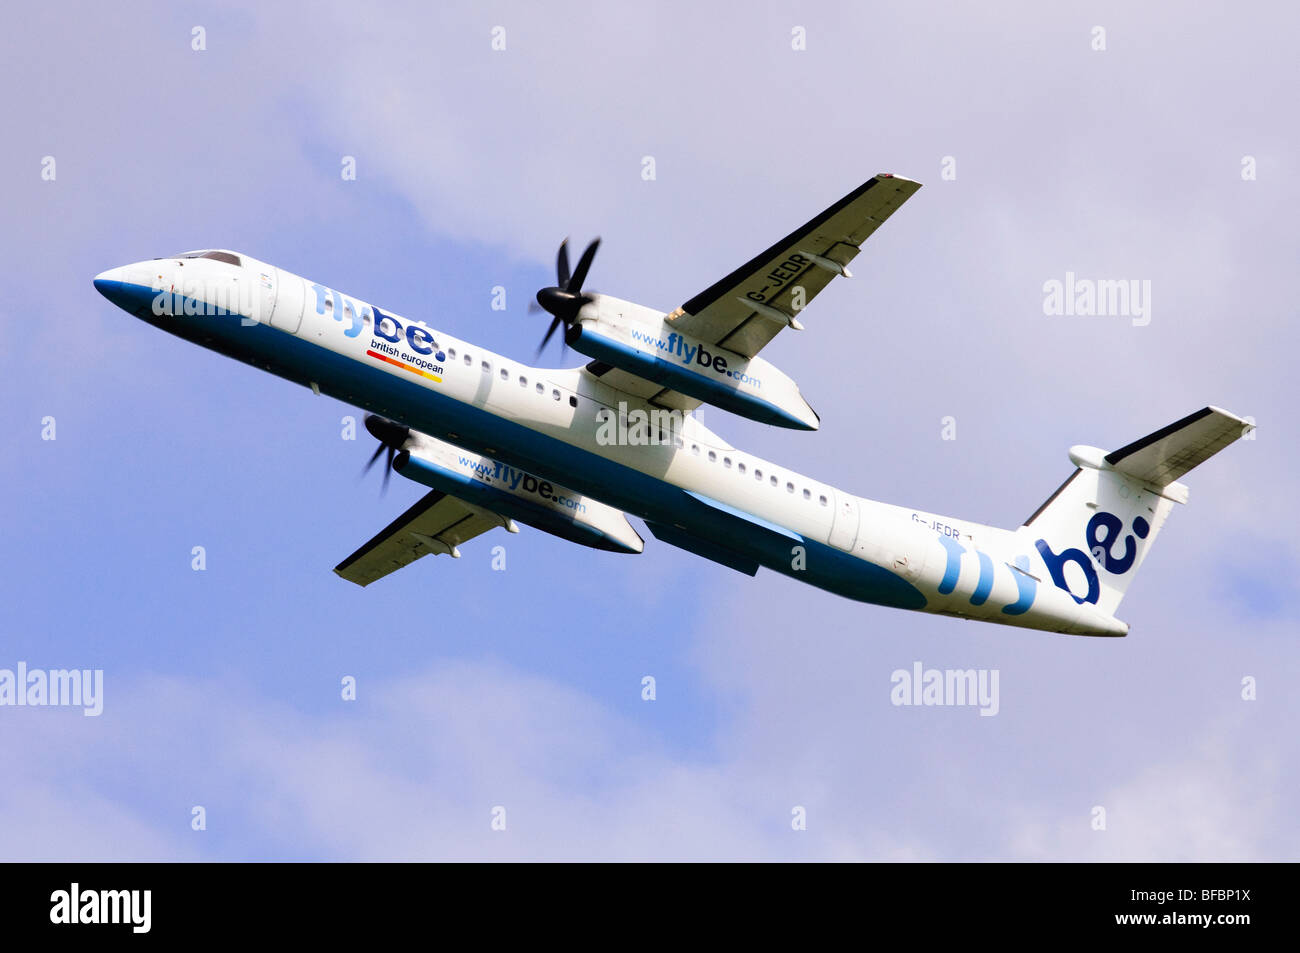 Bombardier Dash 8 operated by Flybe on climbing out from take off at Birmingham Airport - Stock Image